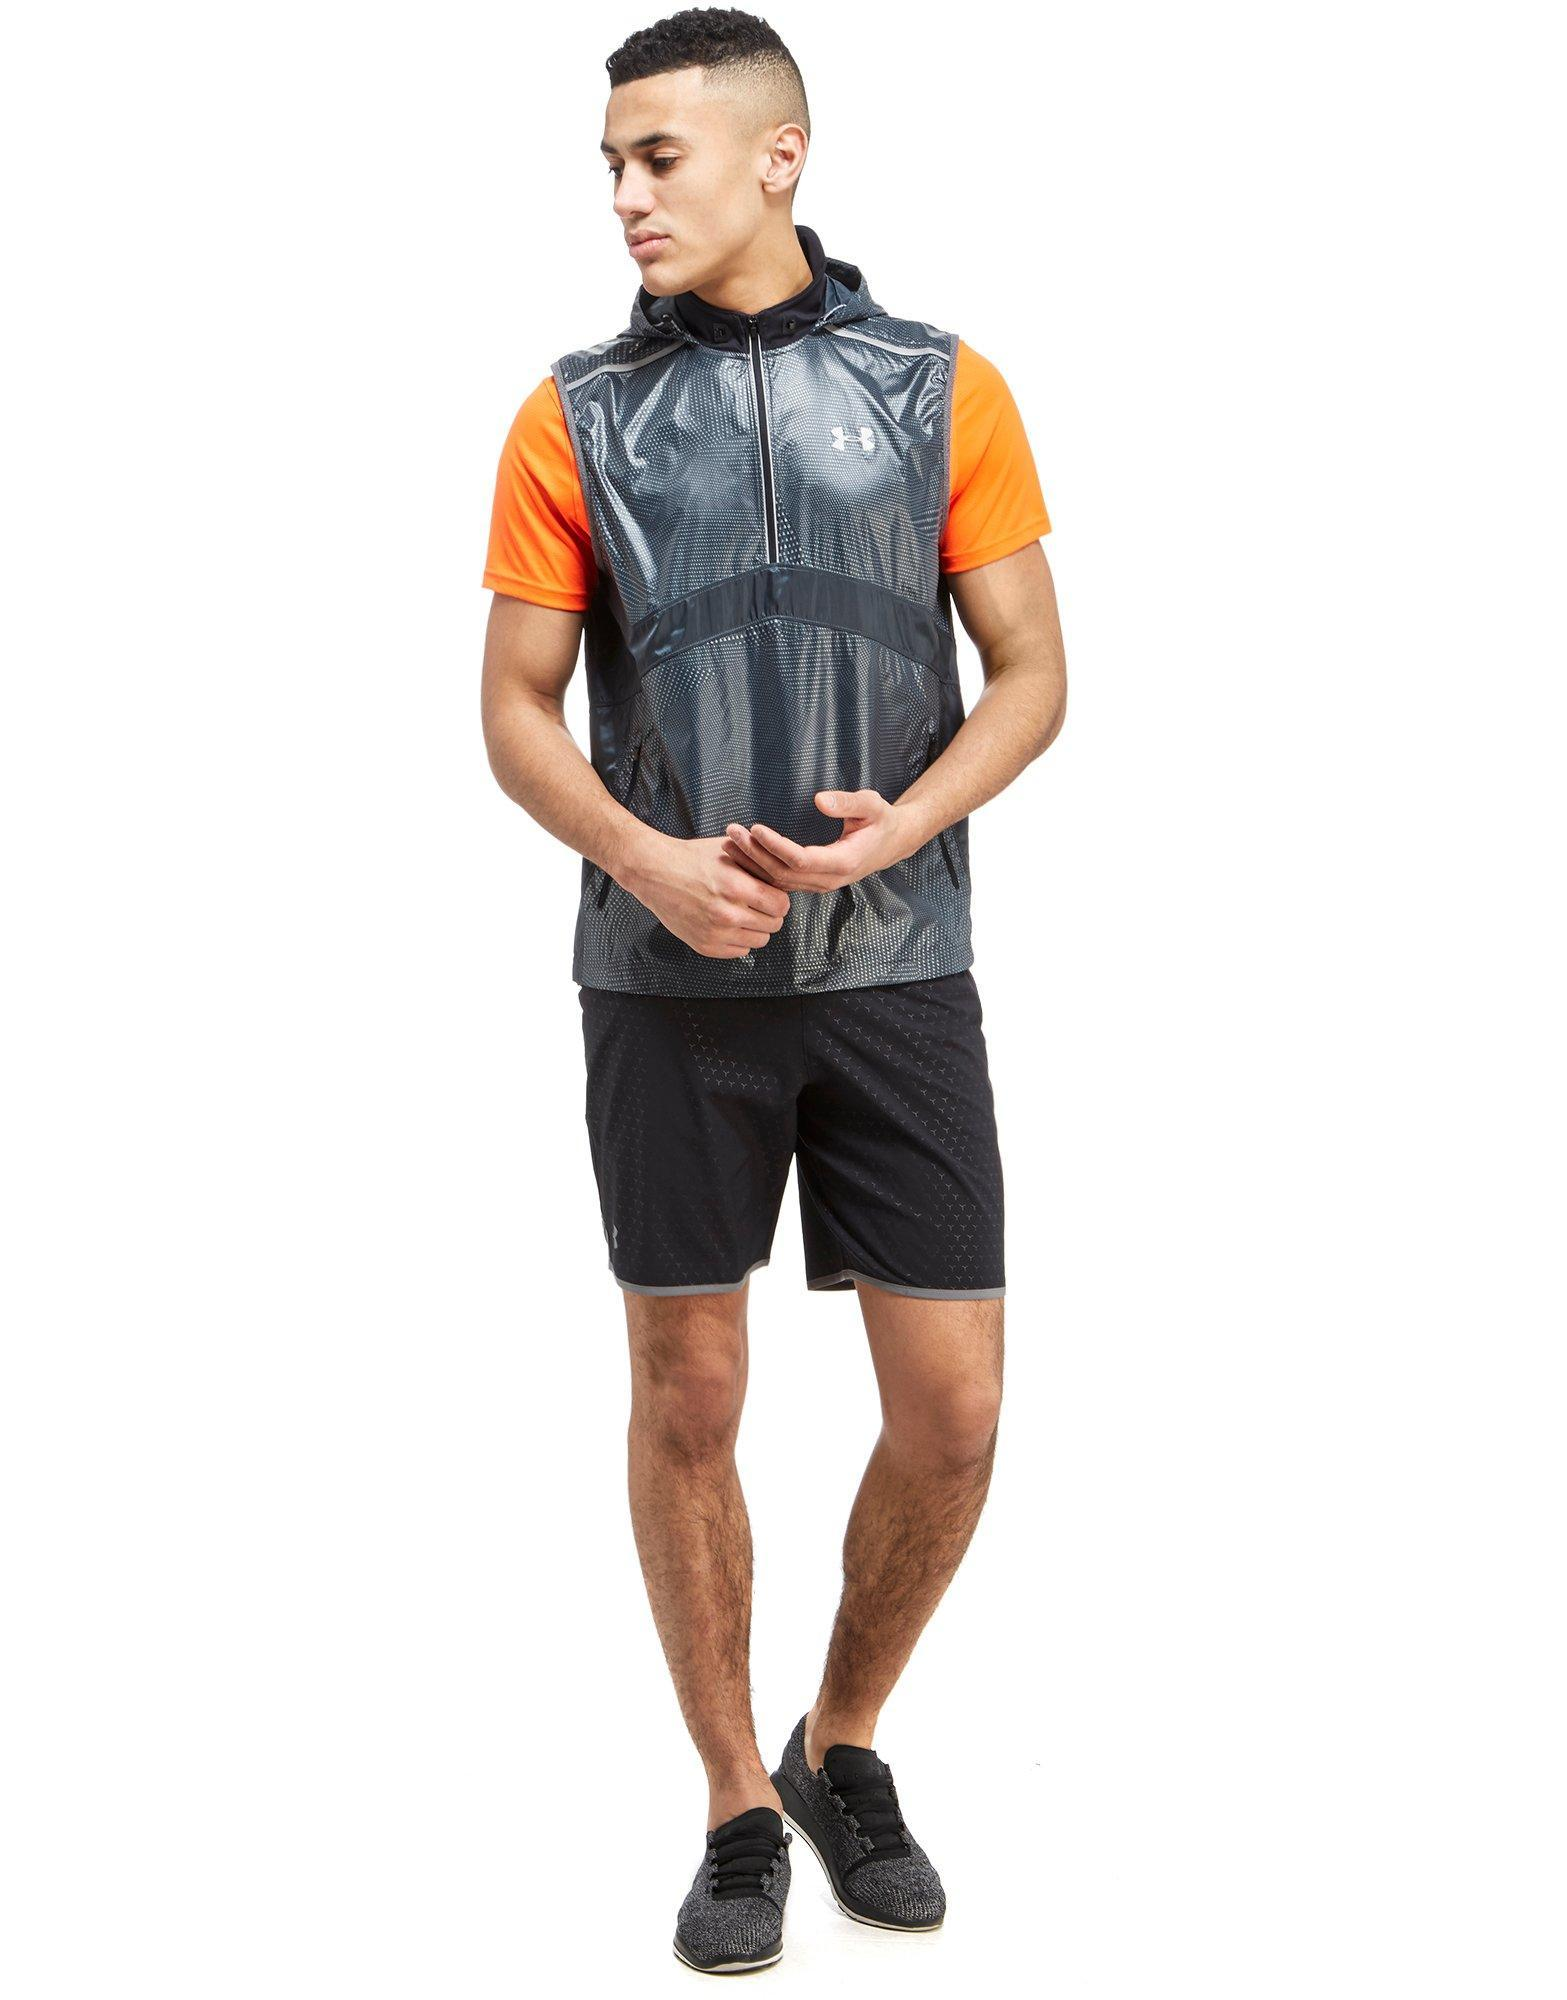 Lyst - Under Armour 2020 Run Vest in Gray for Men